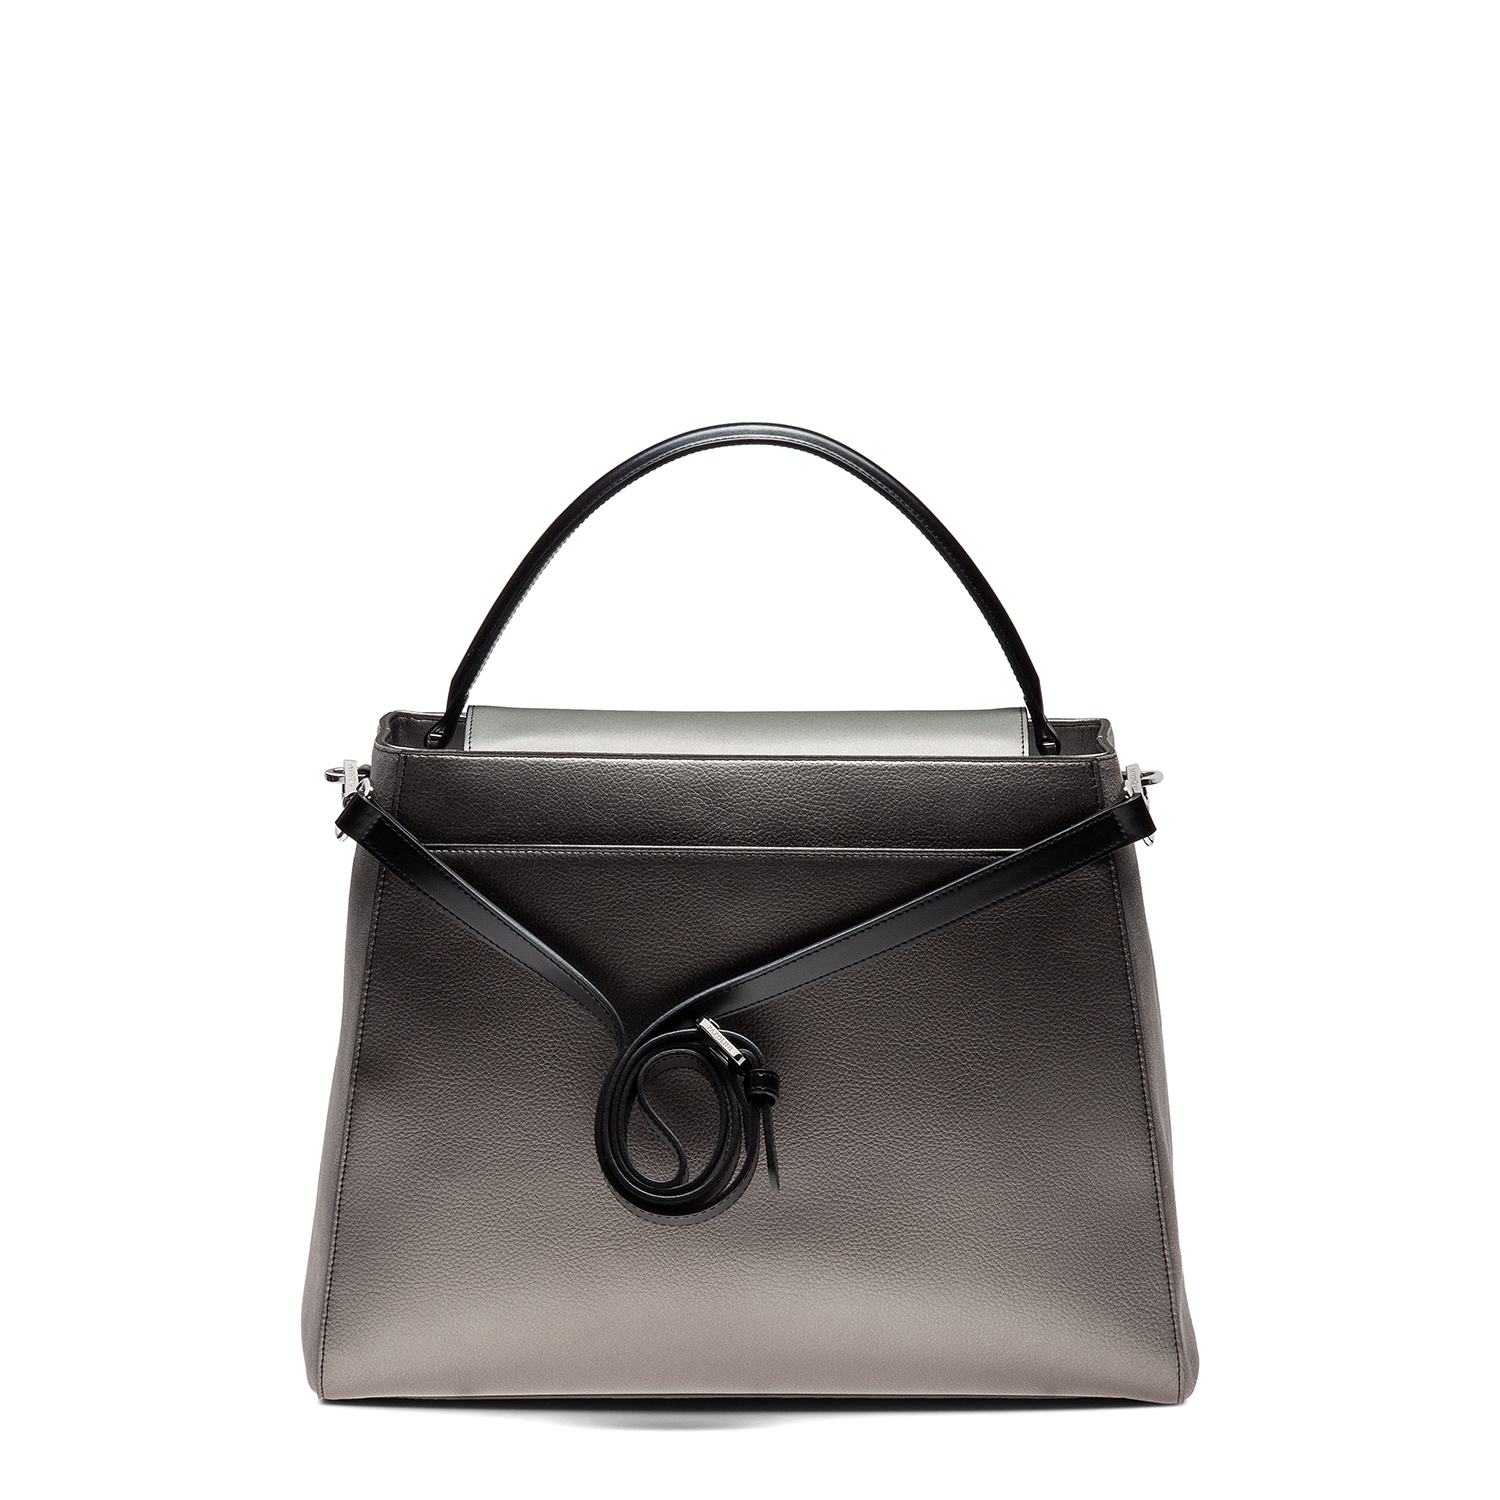 BORSA SHOPPING PAZOLINI BS-N0933-8